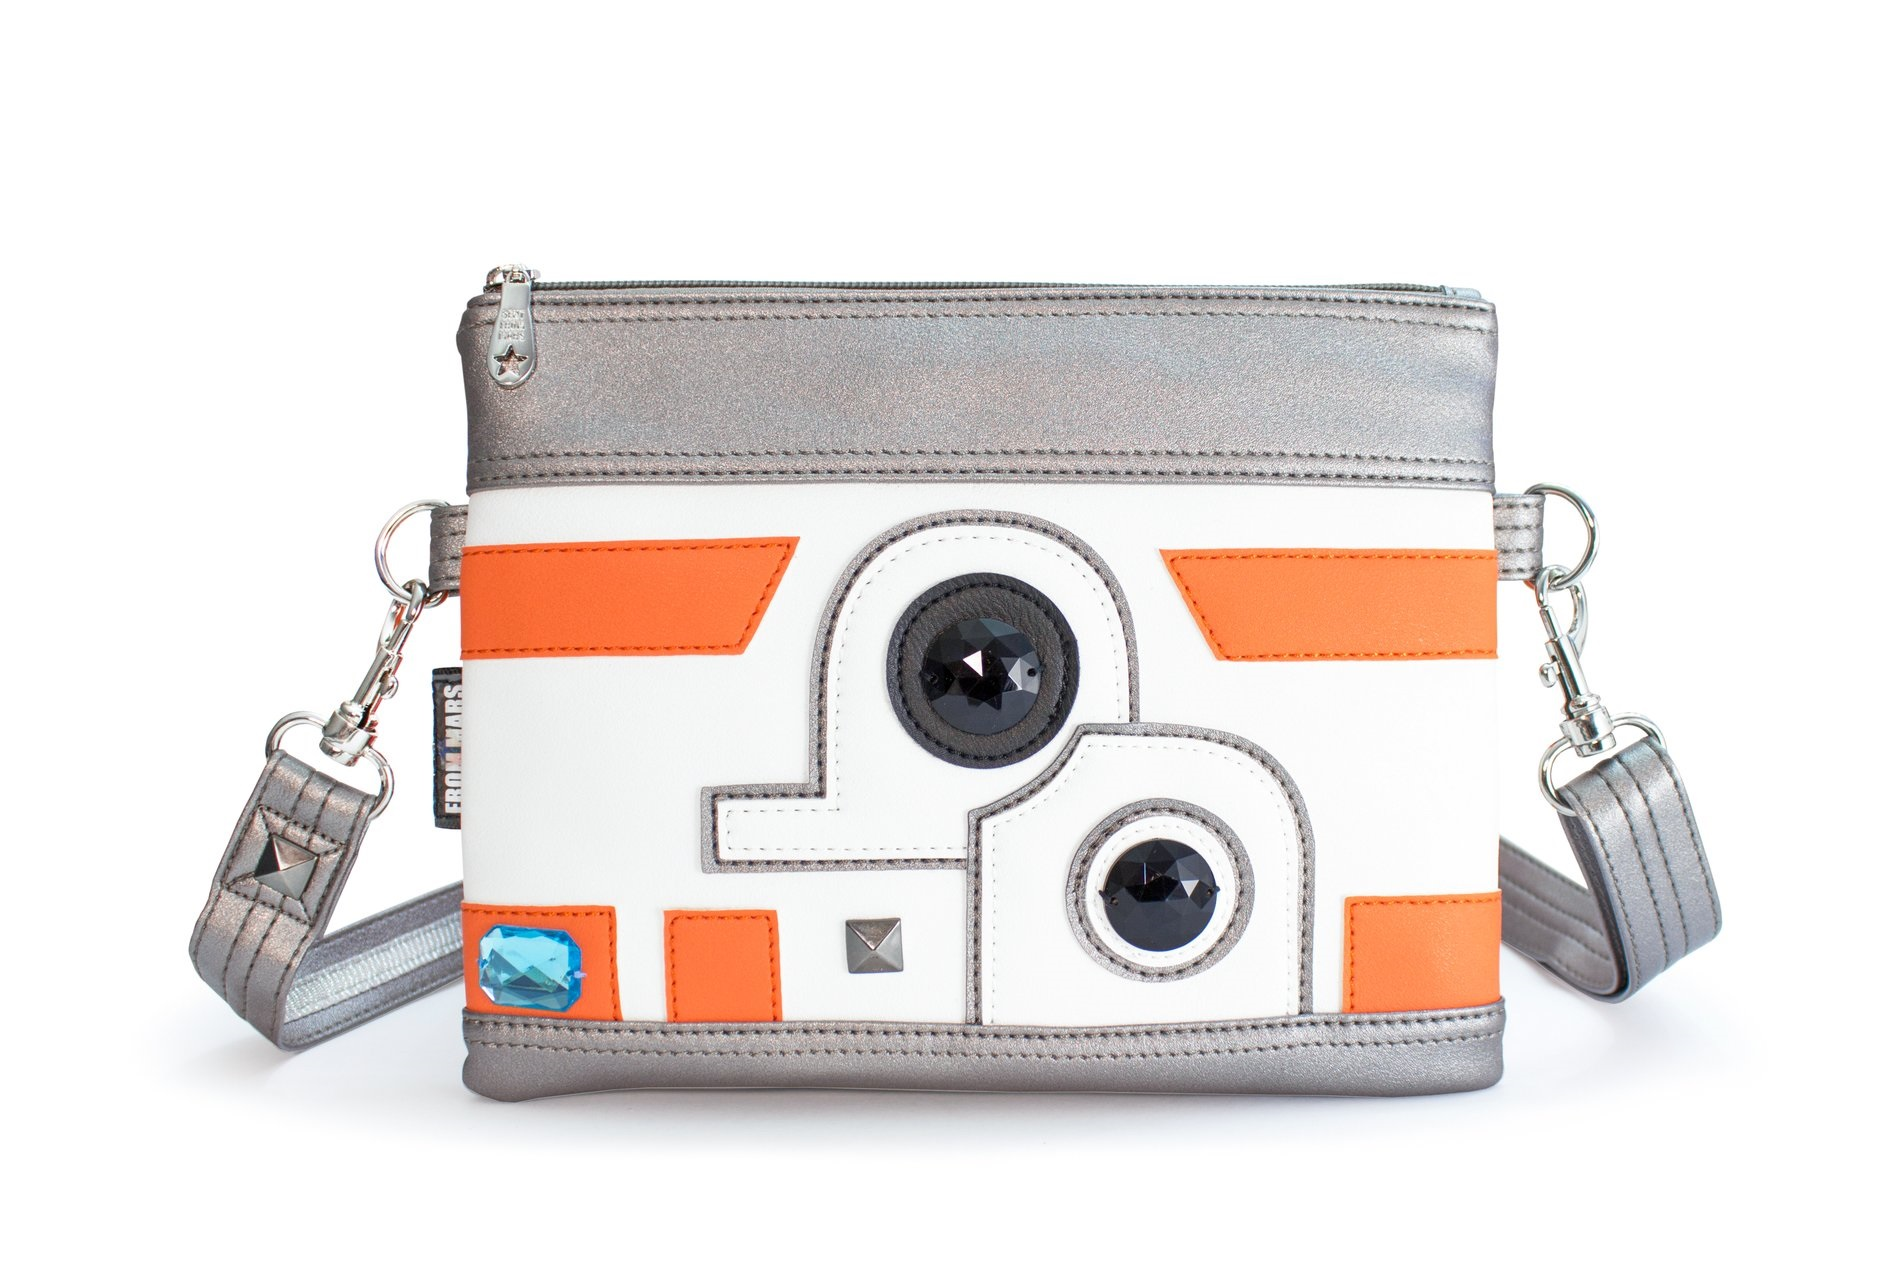 Star Wars BB-8 Inspired Faux Leather Purse by Sent From Mars